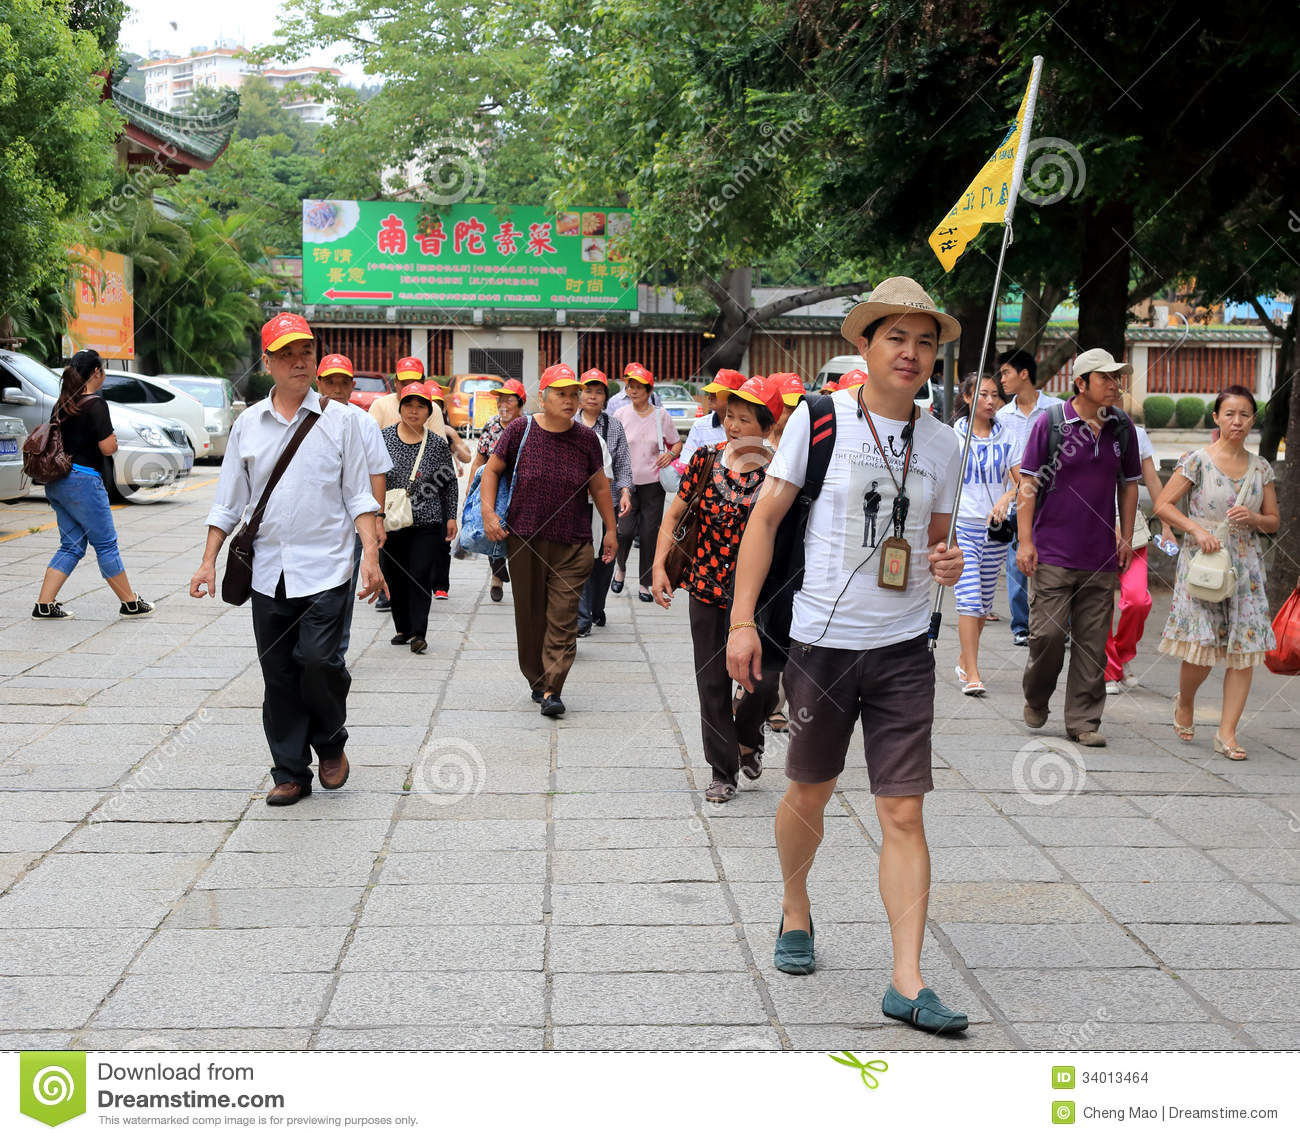 Tips For Traveling To China For The First Time: Male Guide Raise His Flag Editorial Stock Image. Image Of